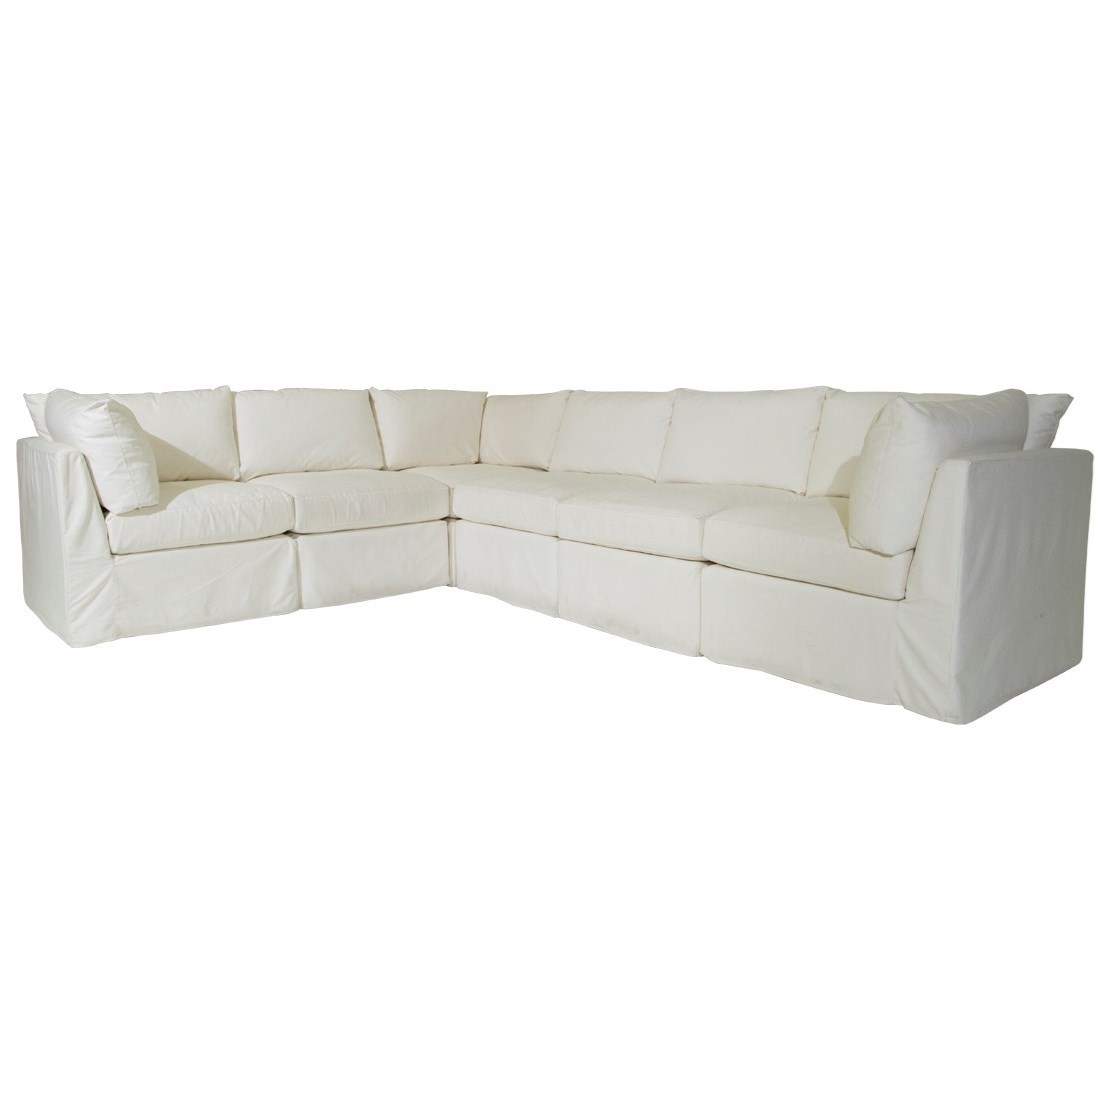 McCreary Modern 1058 Slipcover Sectional - Item Number: 1058-Daryl Natural